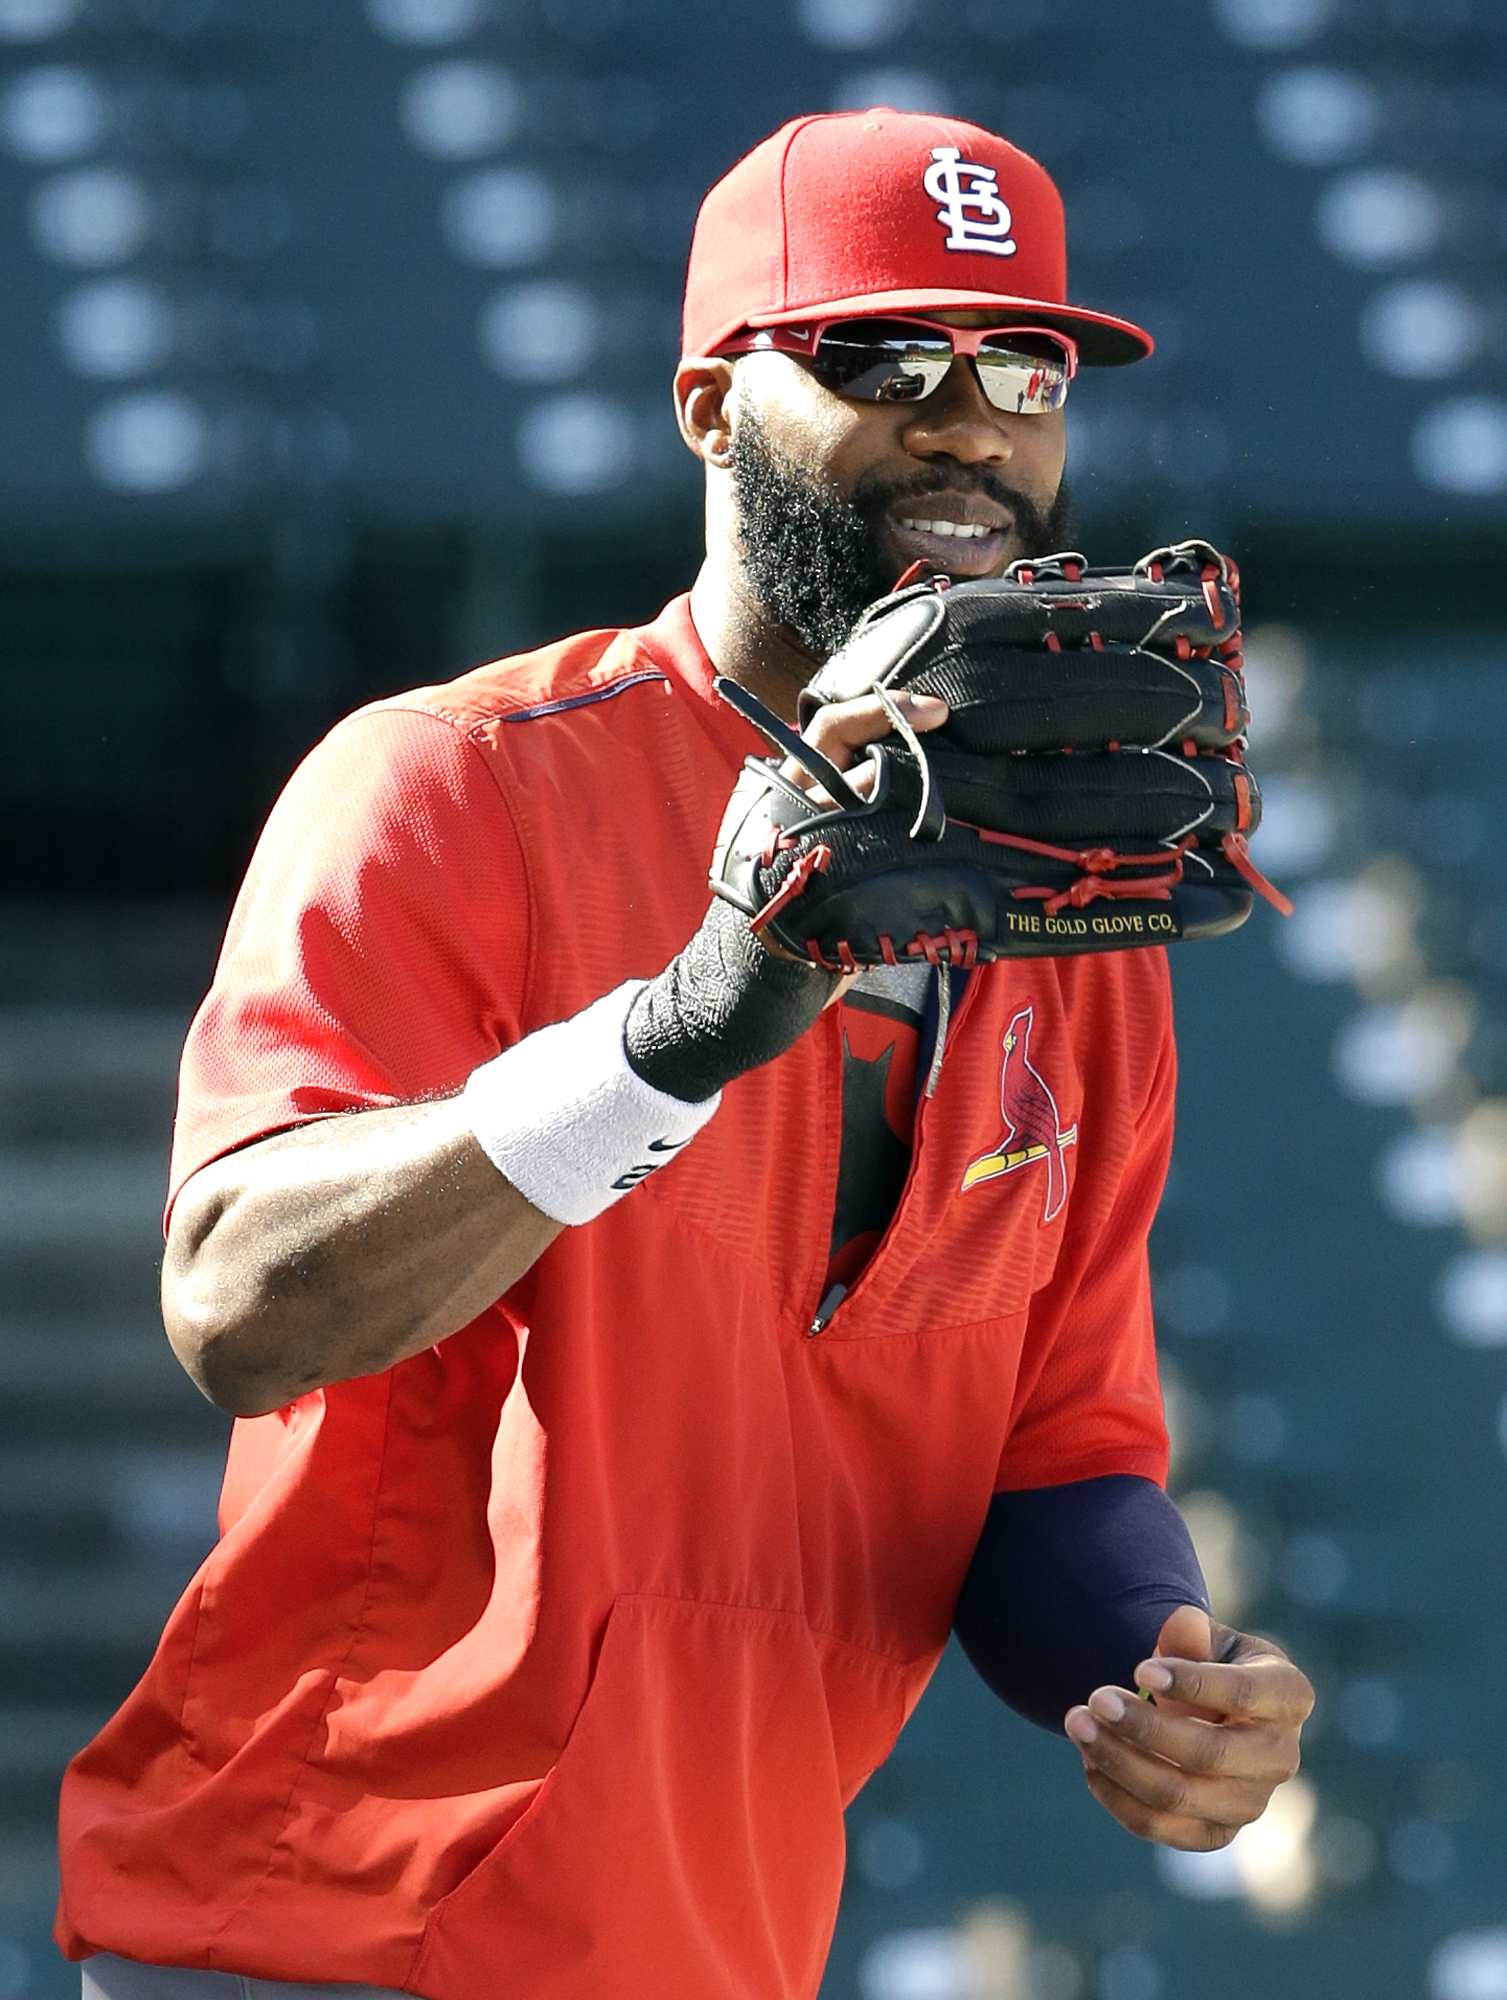 St. Louis Cardinals' Jason Heyward smiles as he waits for a ball during an NLDS baseball practice on Sunday, Oct. 11, 2015 in Chicago. The Cardinals will face the Chicago Cubs in Game 3 of the National League Division Series on Monday. (AP Photo/Nam Y. Hu